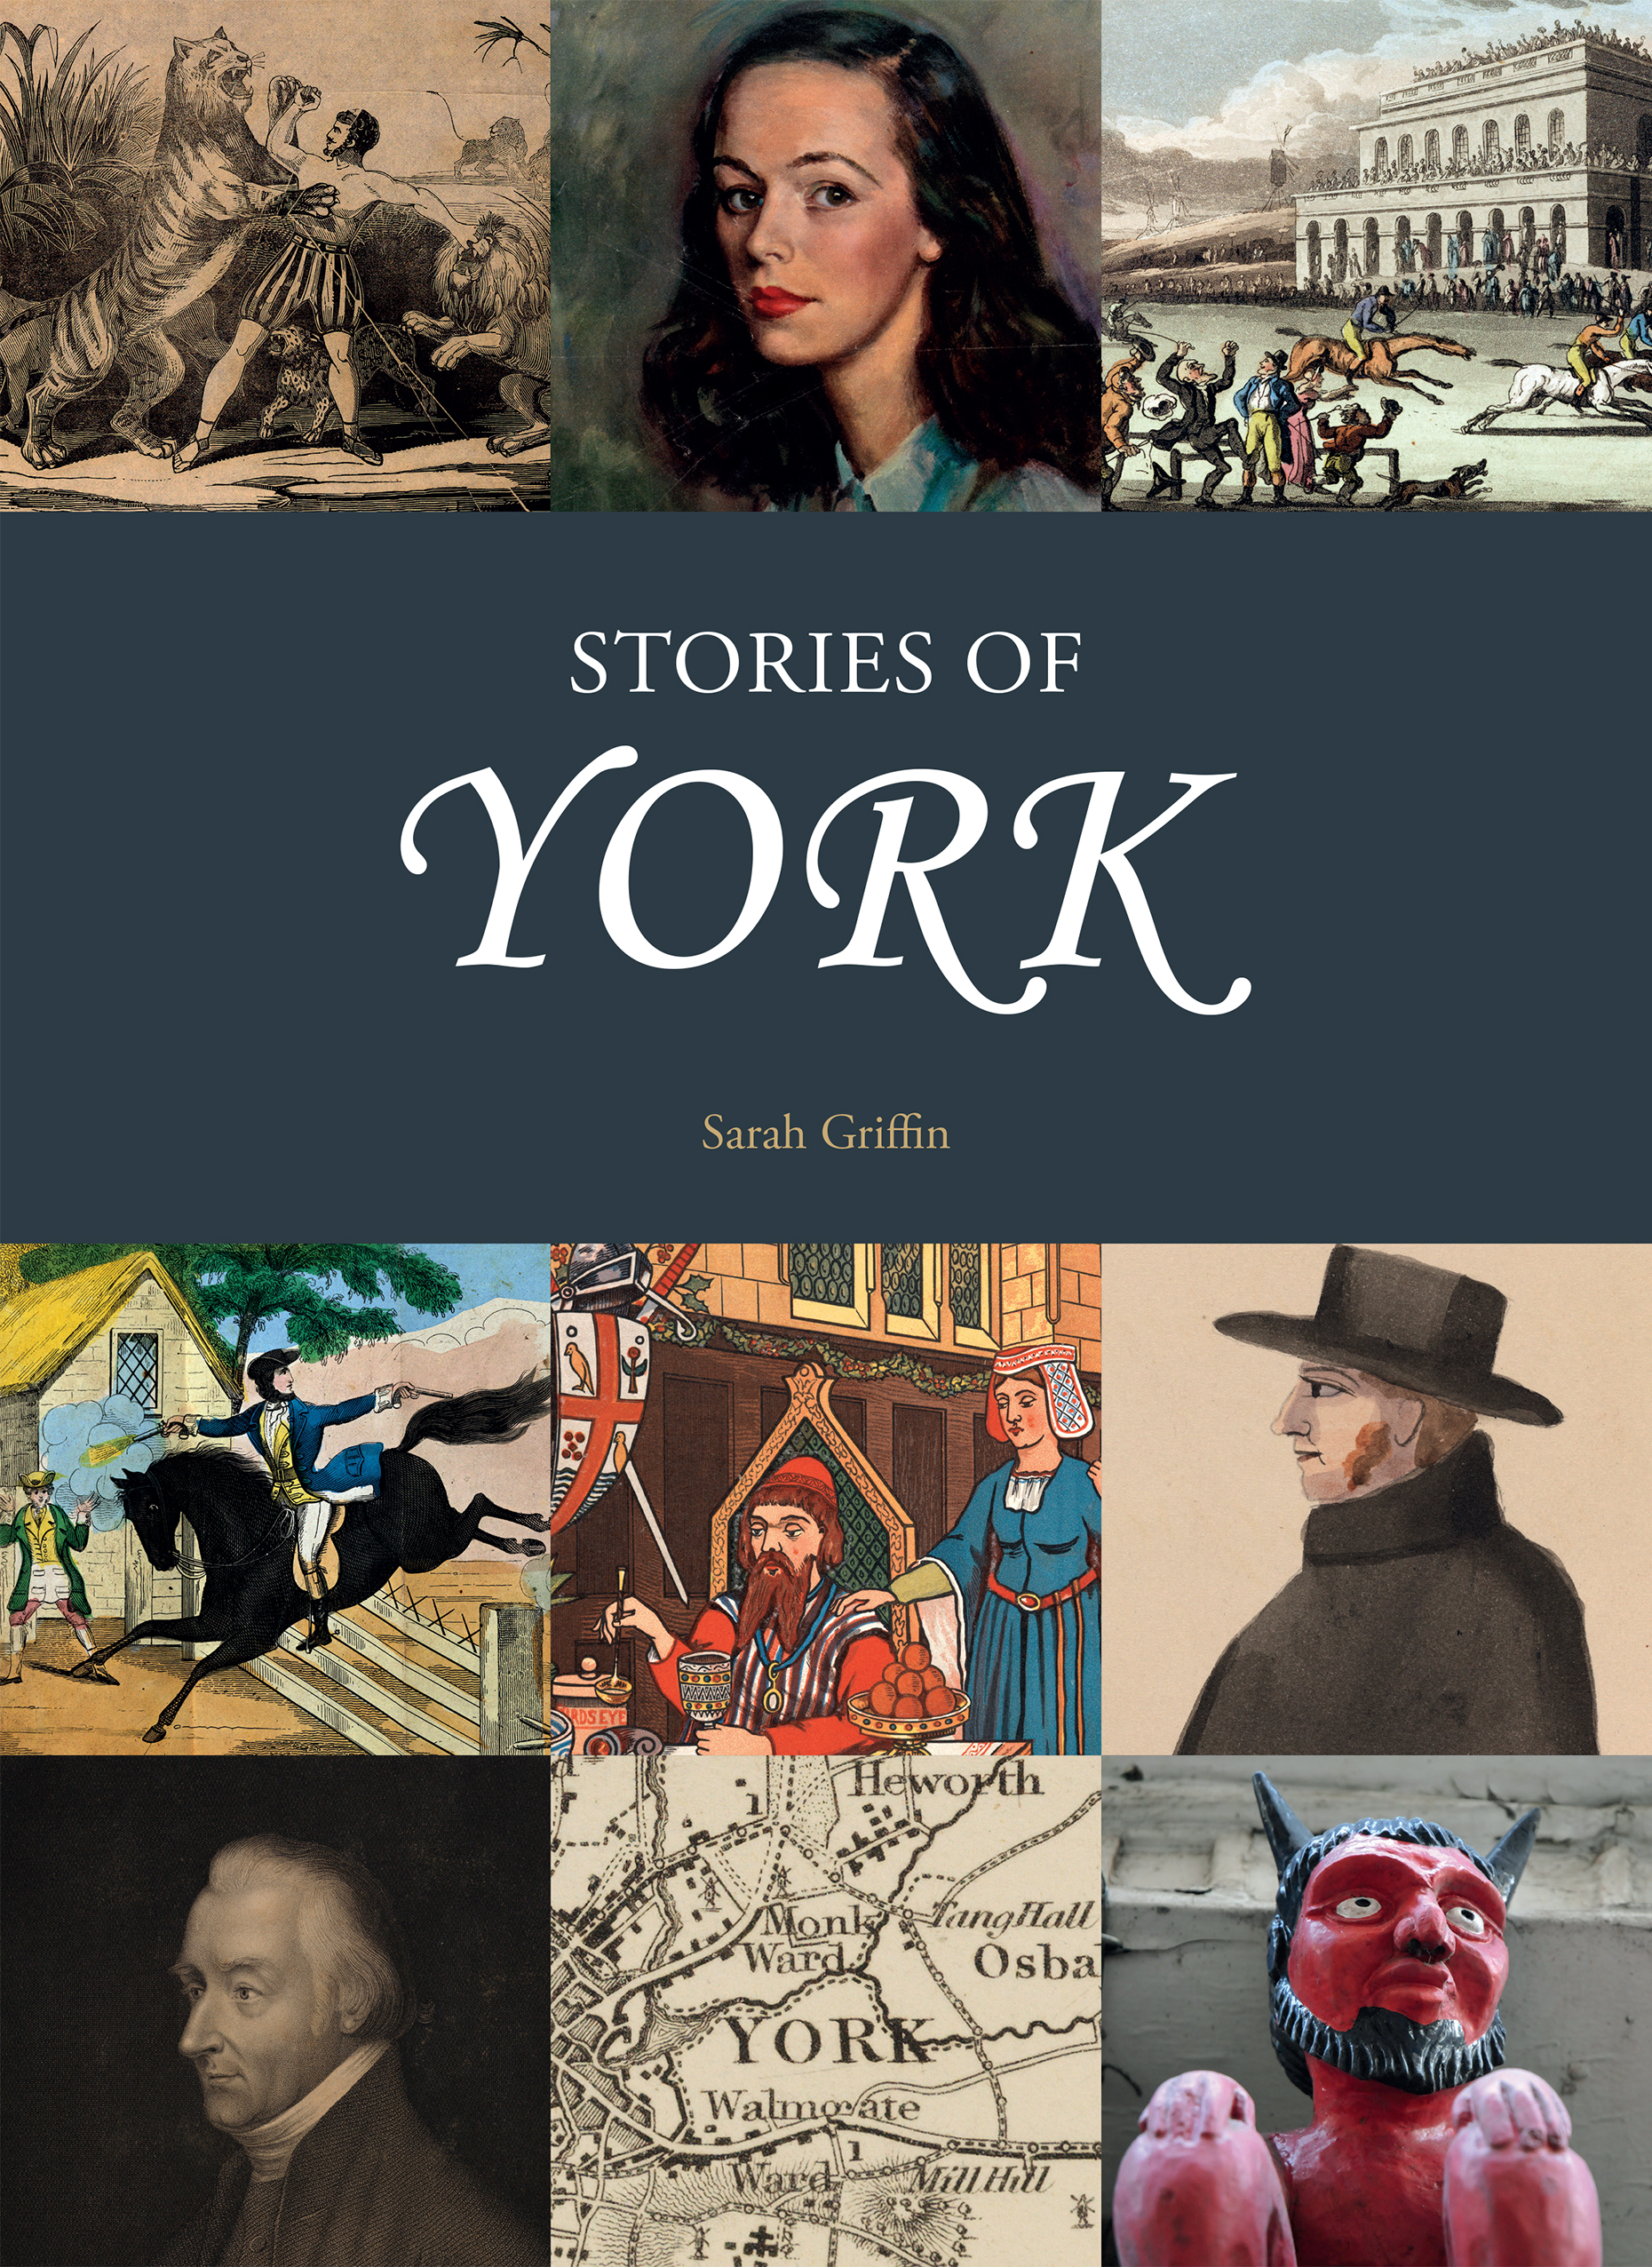 Cover of the Stories of York book, produced by the University of York and the York Minster, featuring items from the Minster Library and the University's Special Collections.